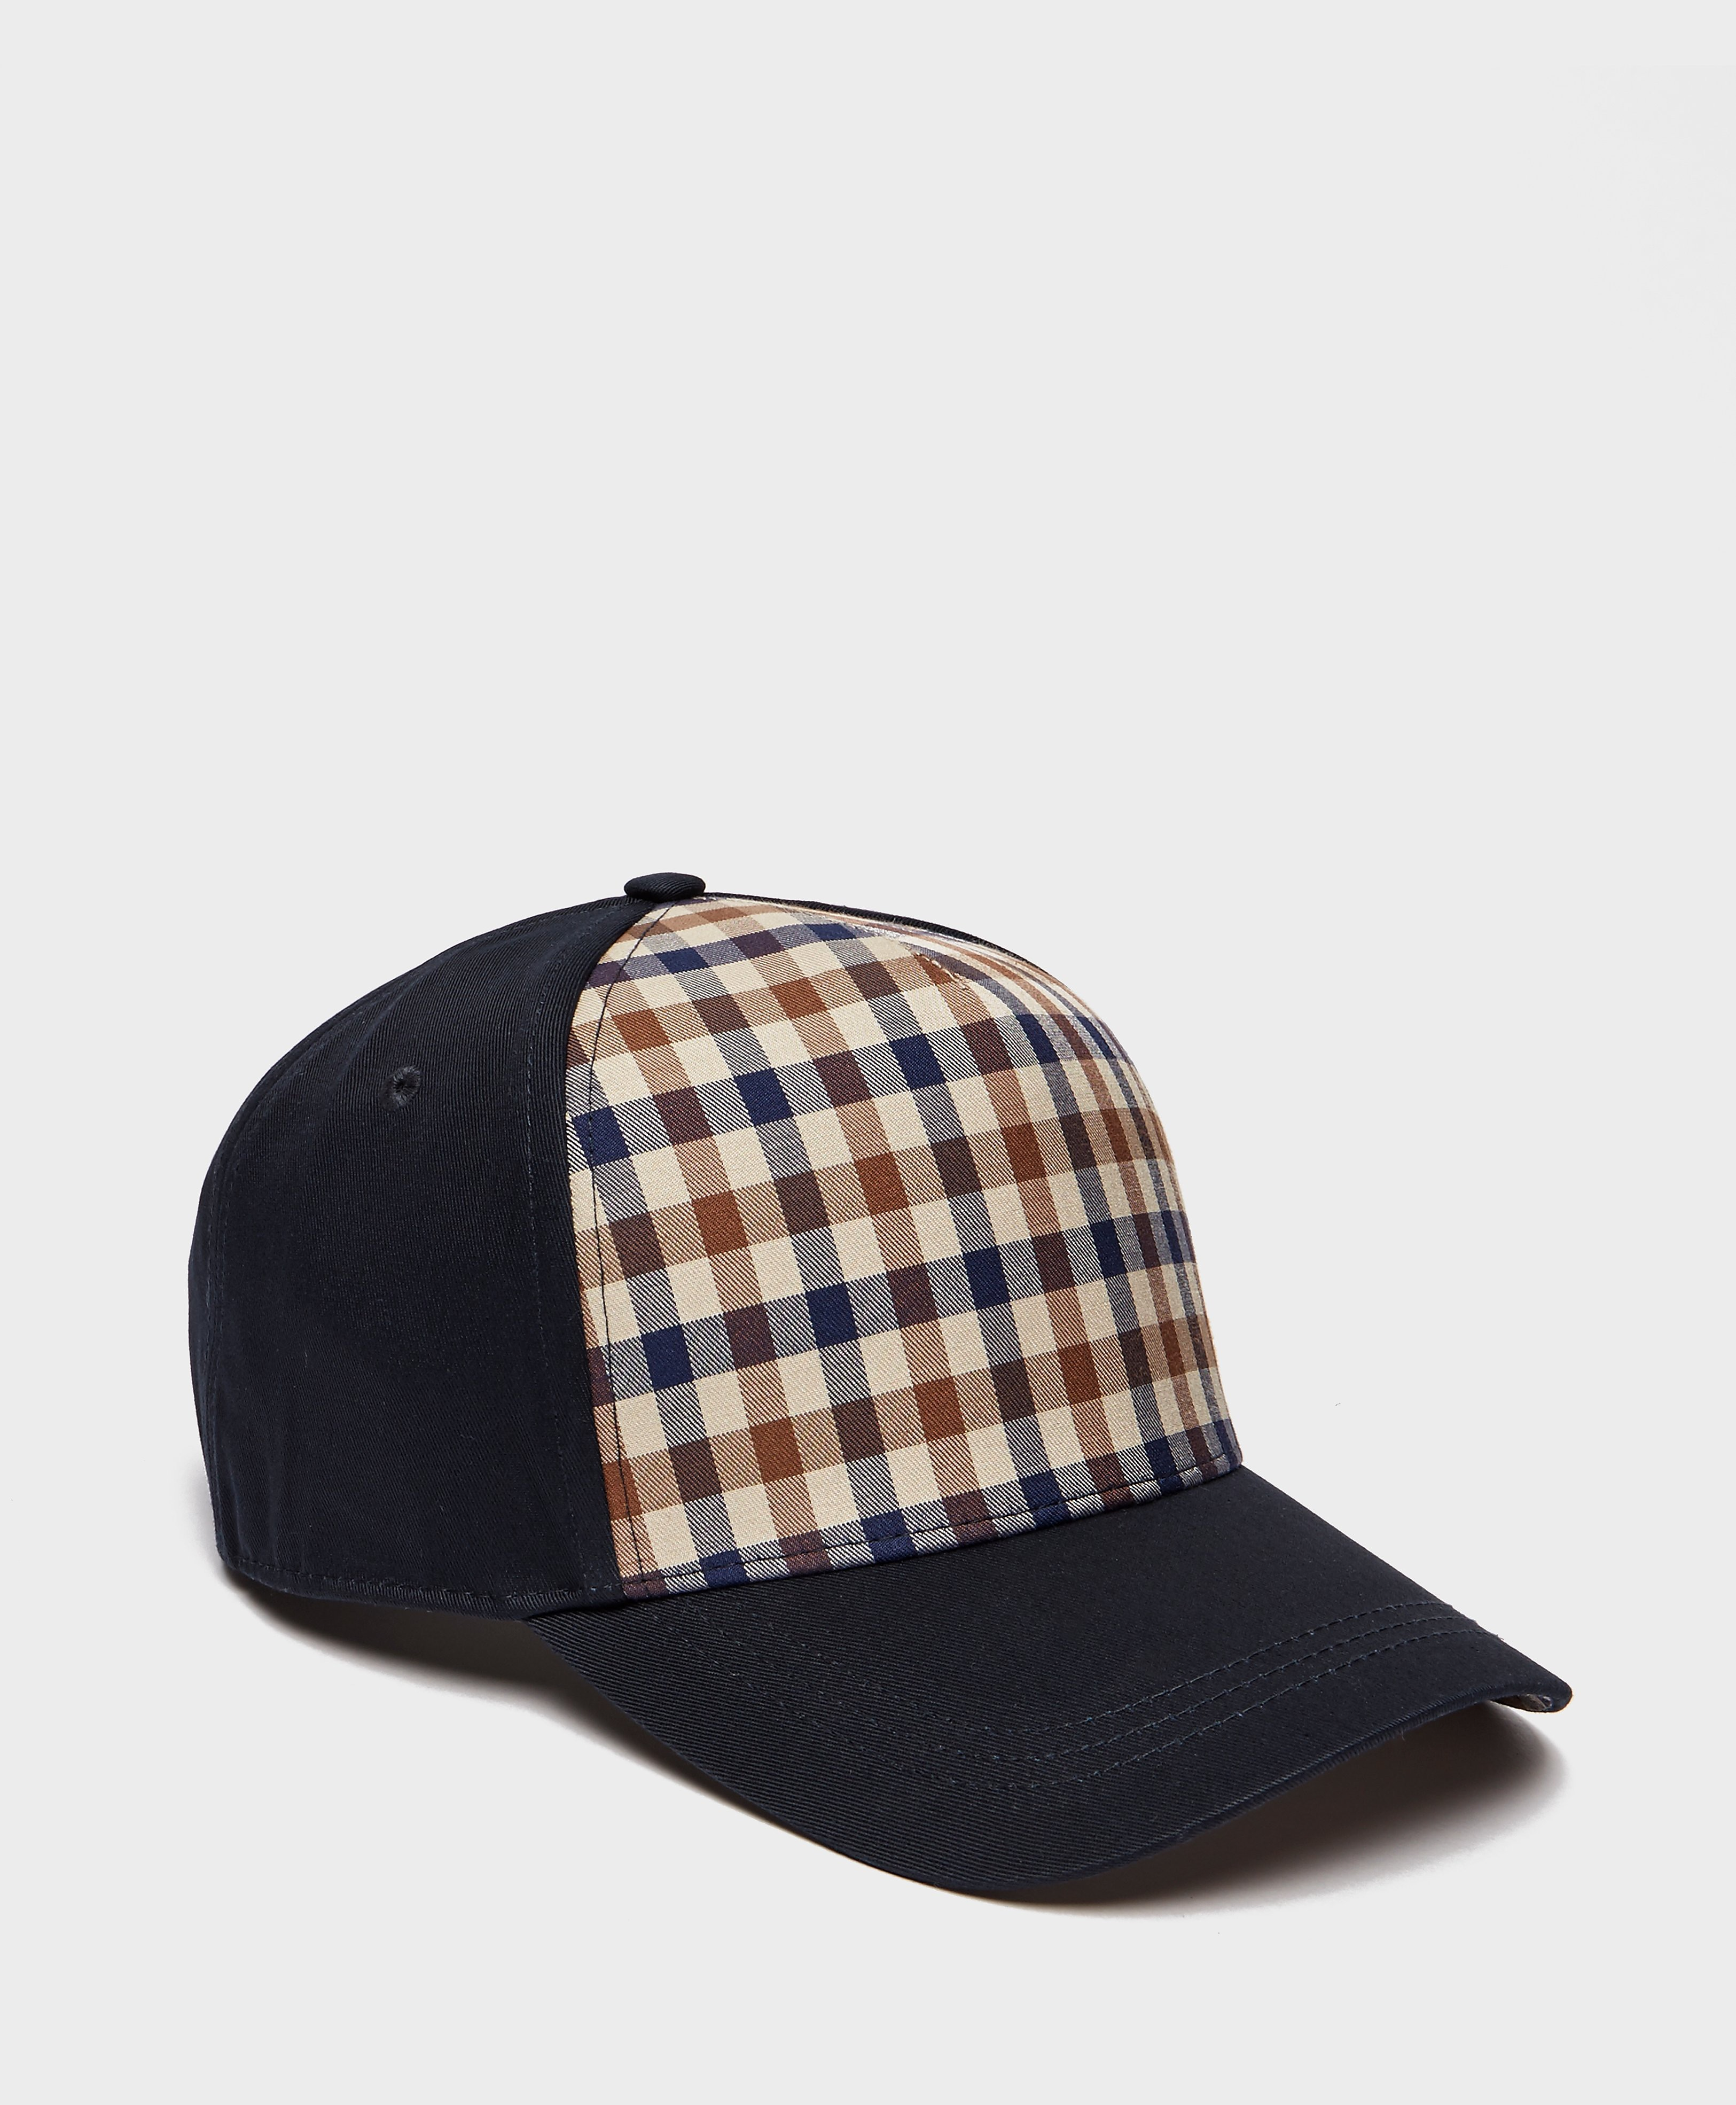 Aquascutum House Check Panel Cap